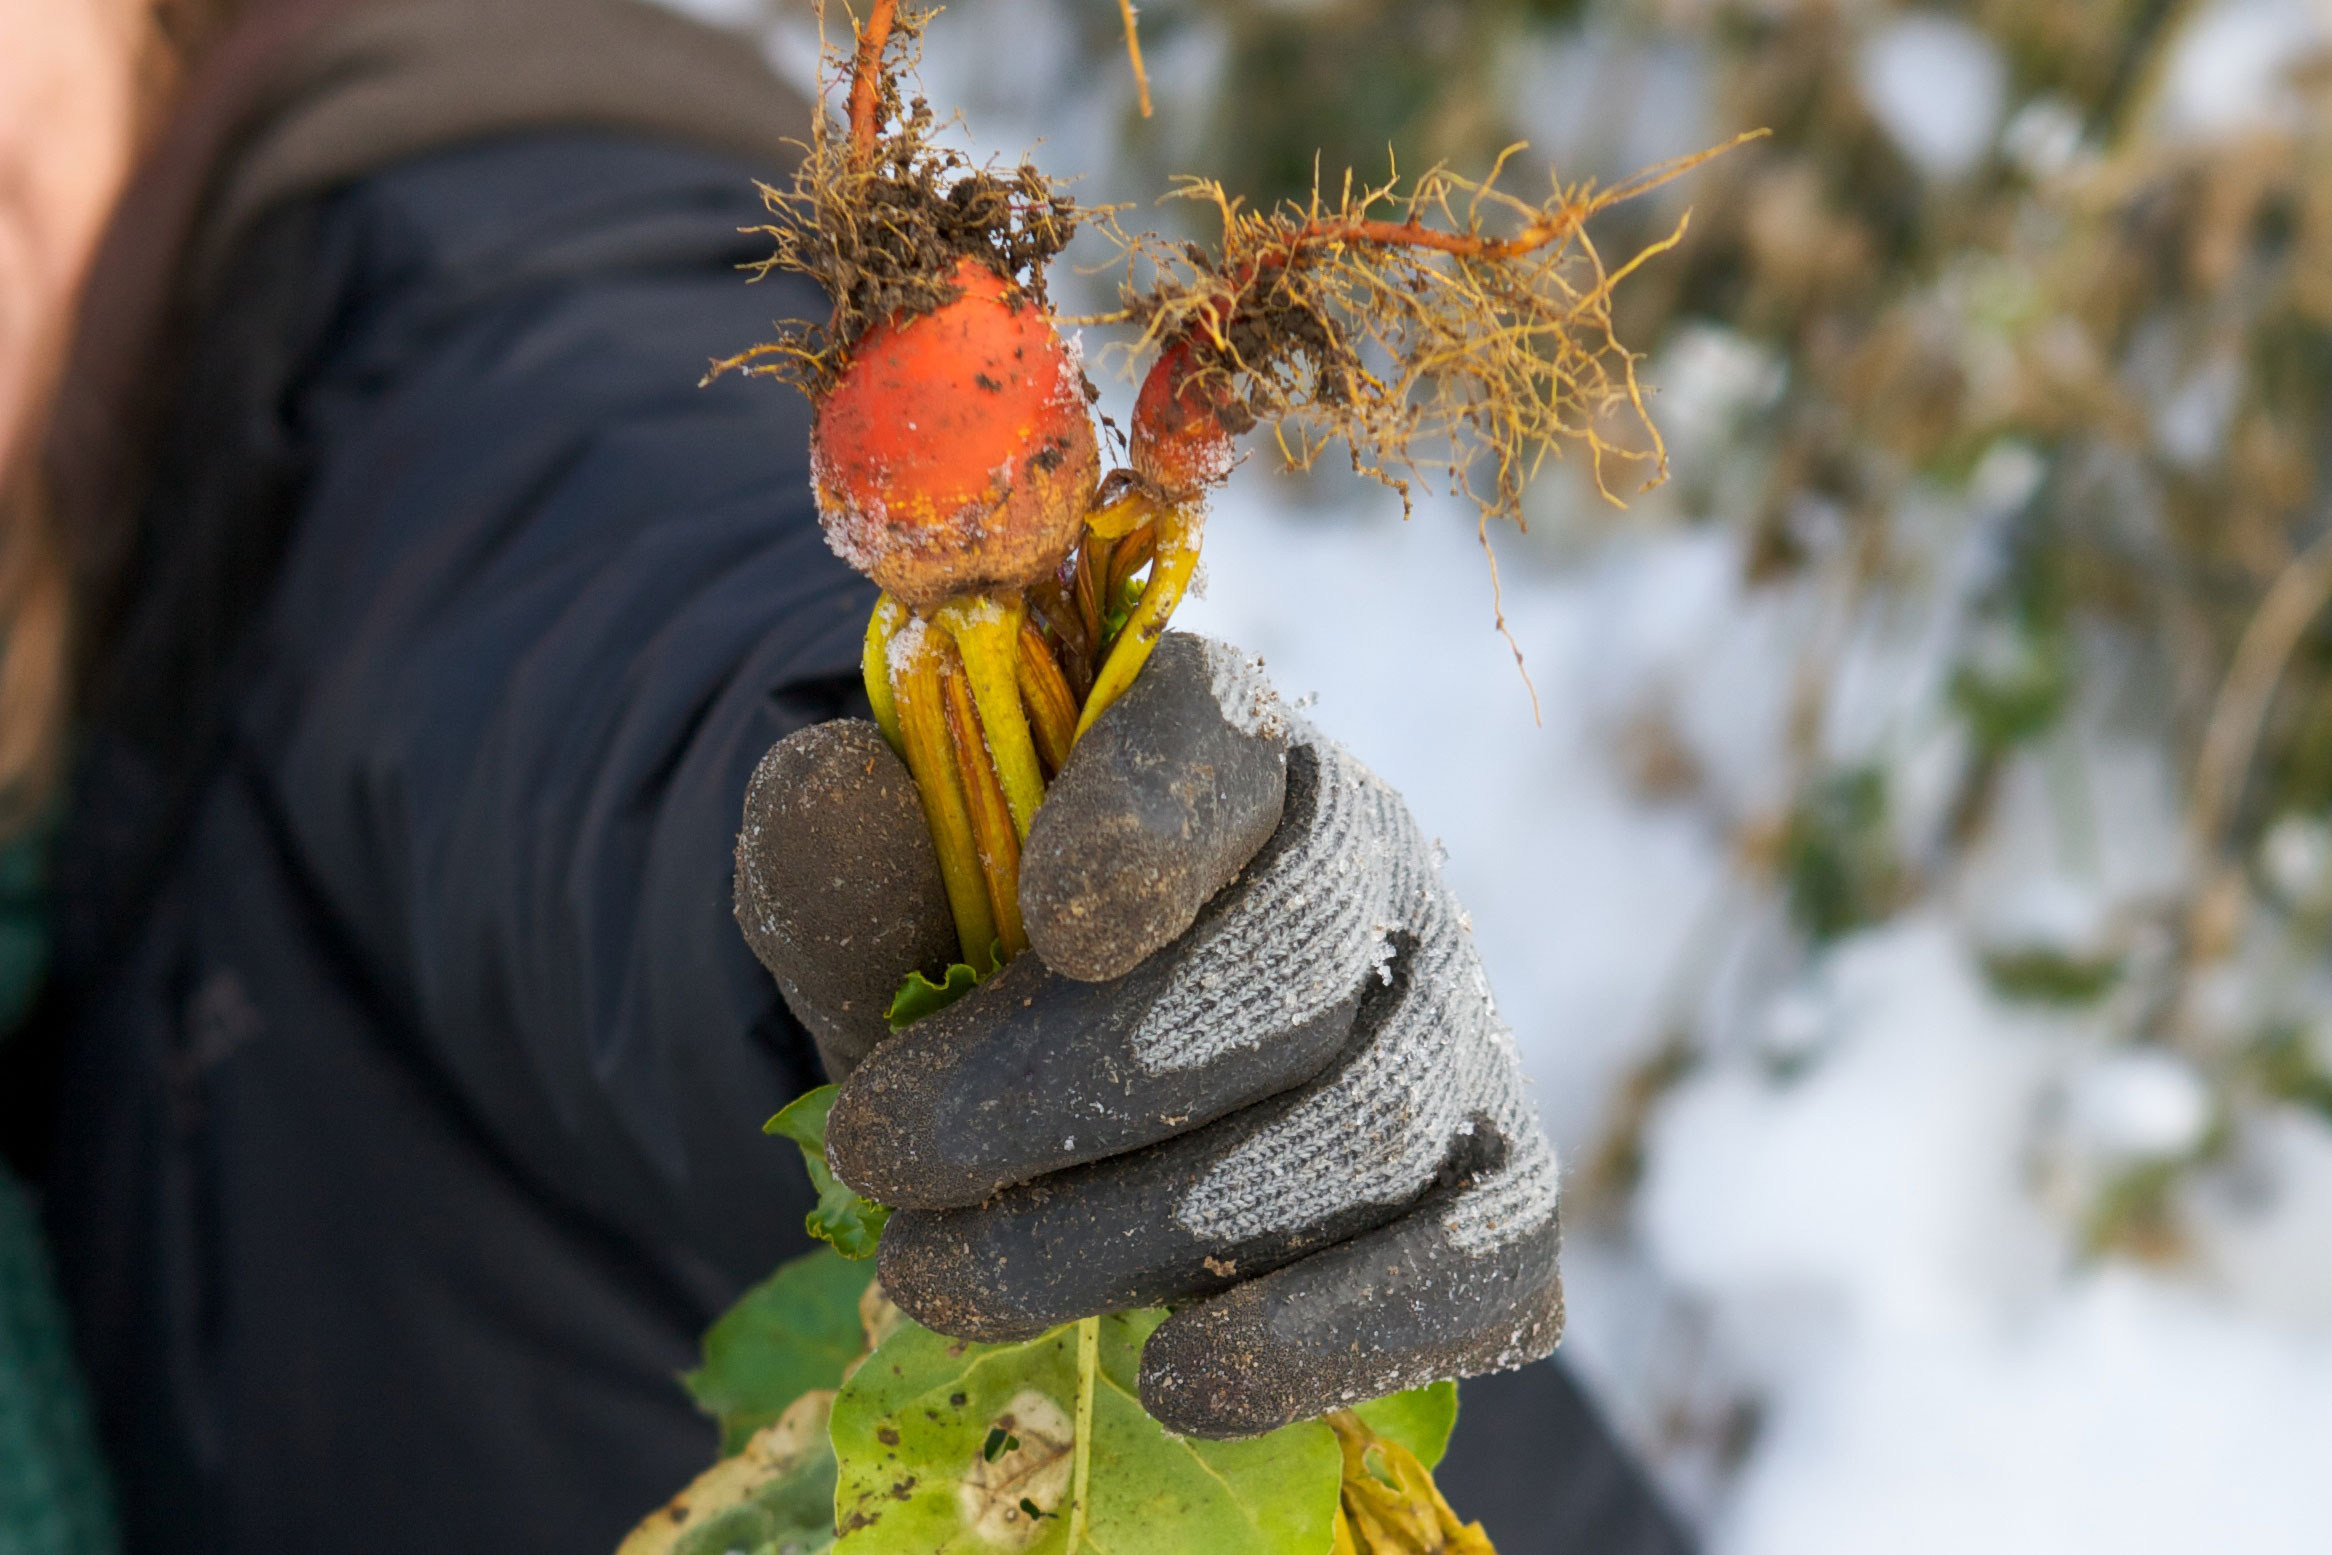 gardener holding beets pulled from her garden in the winter